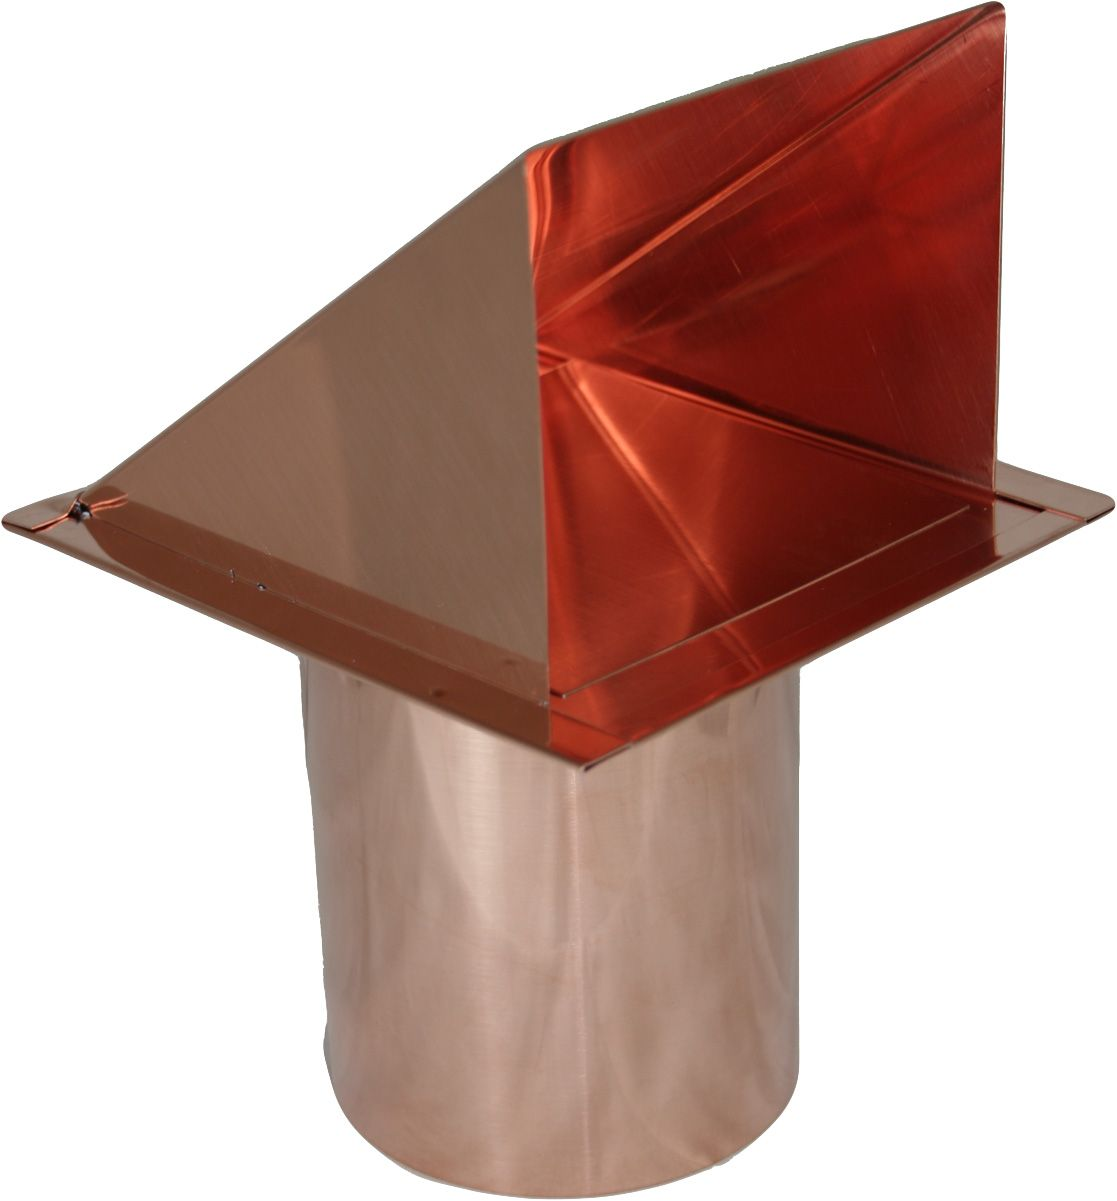 Copper Wall Air Intake Vent With Screen Wall Vents Copper Wall Dryer Vent